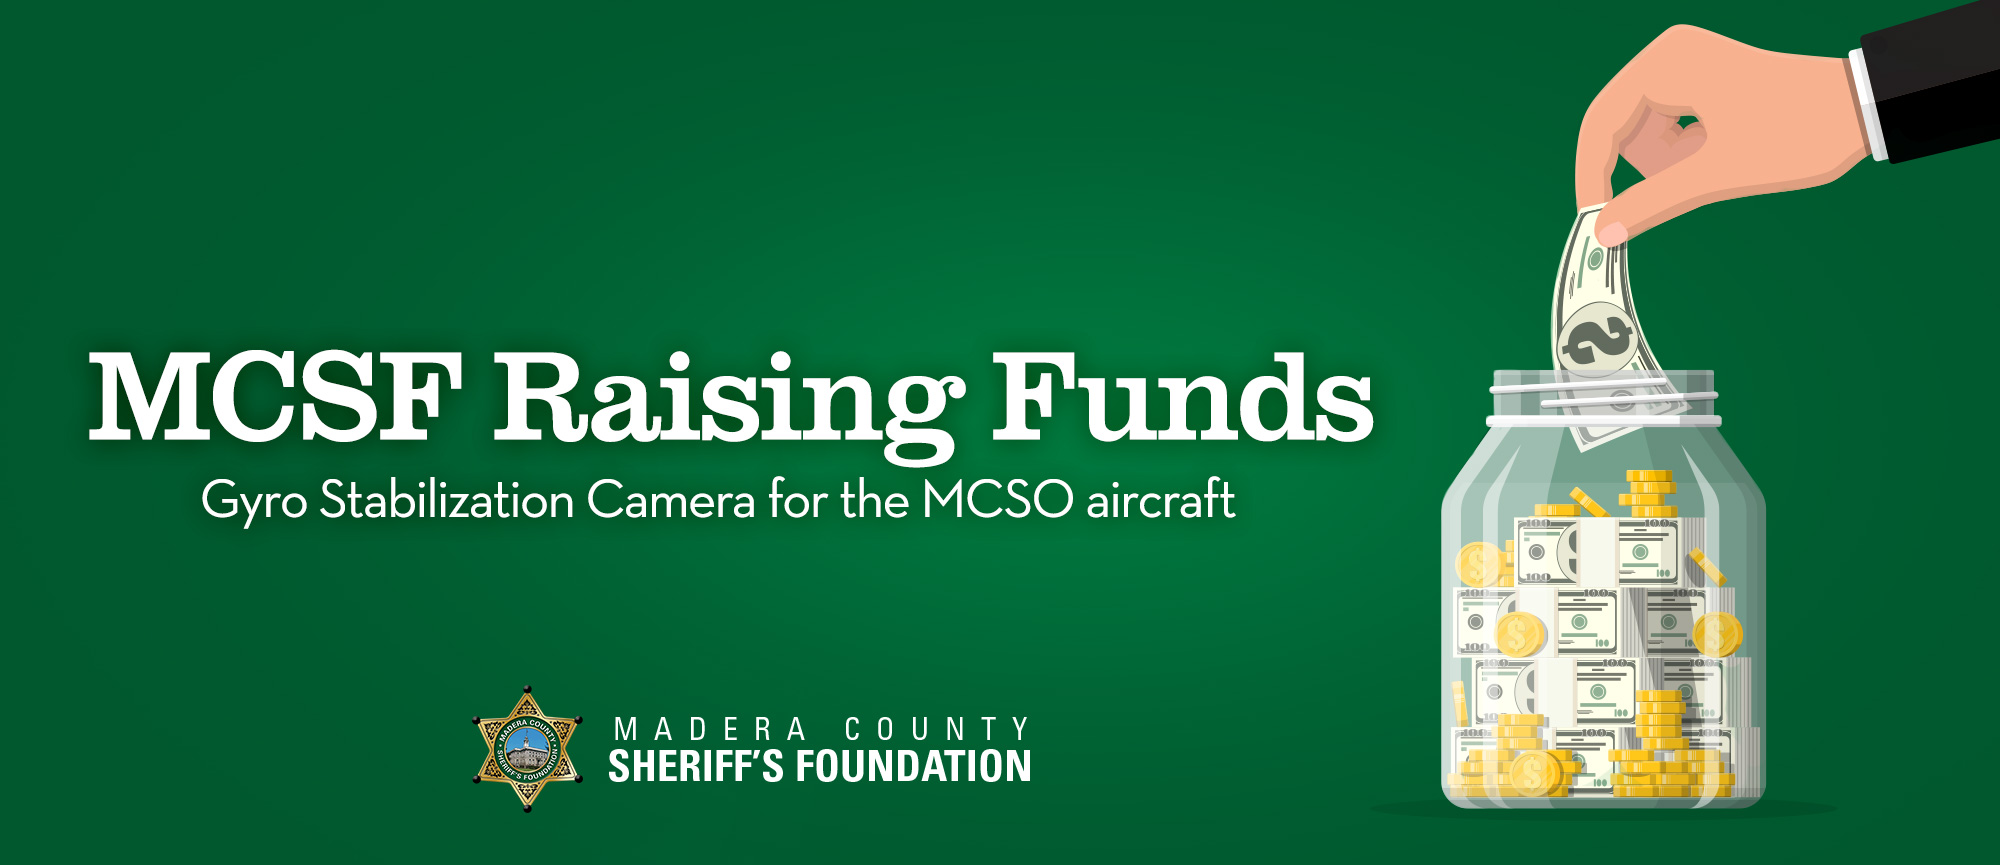 Raising Funds for MSCO Aircraft